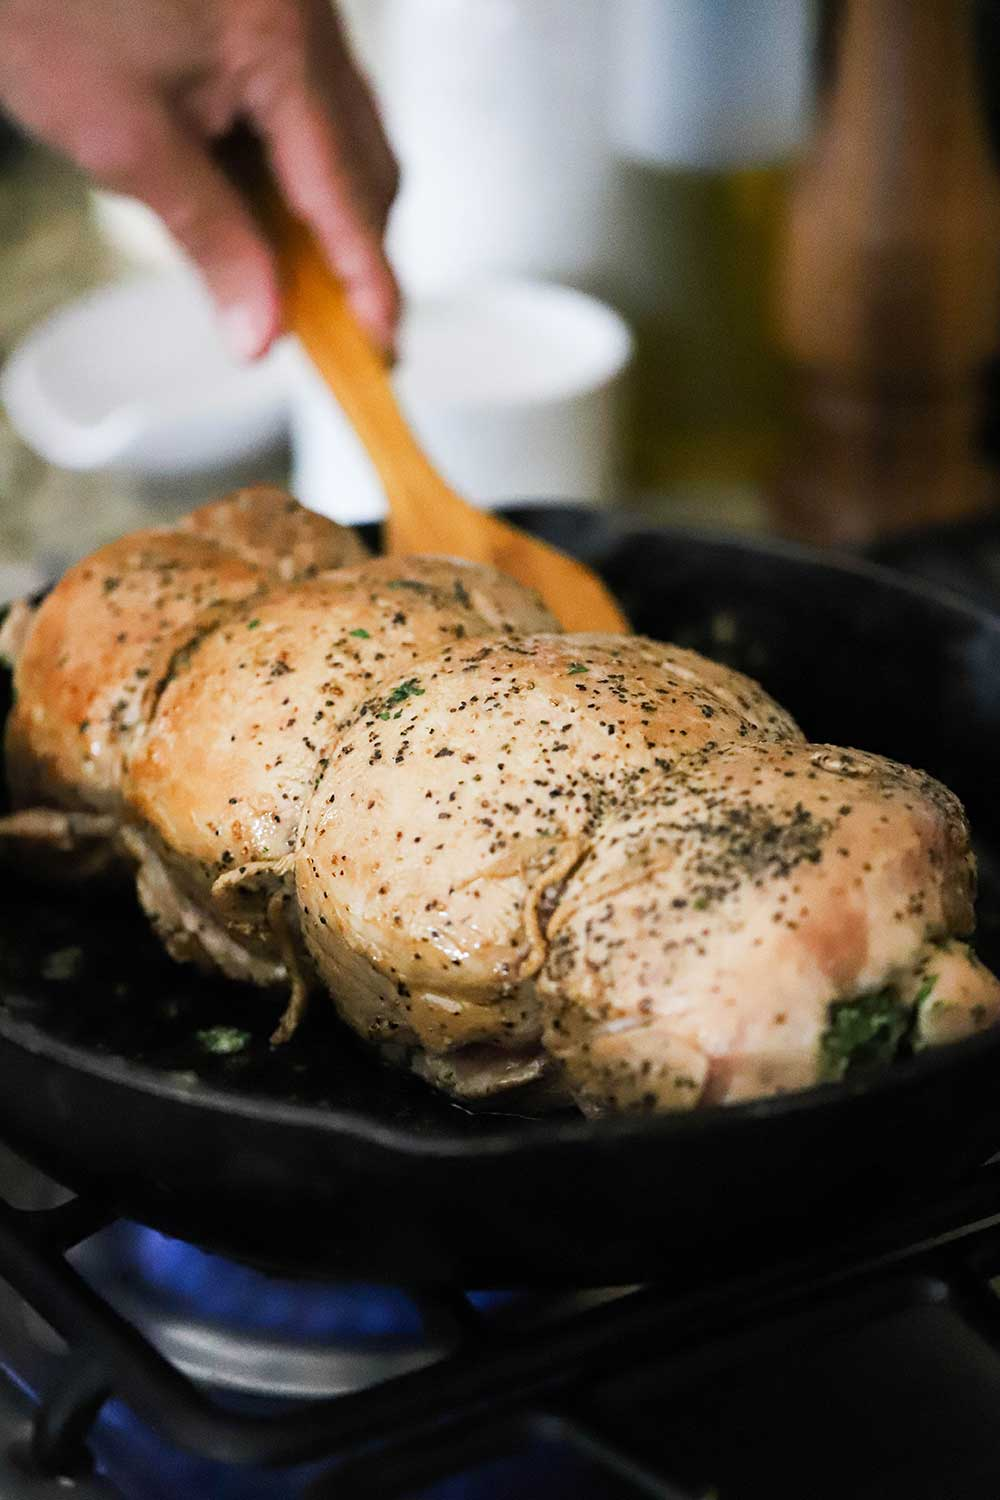 A pork loin that is rolled and tied with twine being seared in a cast-iron skillet.